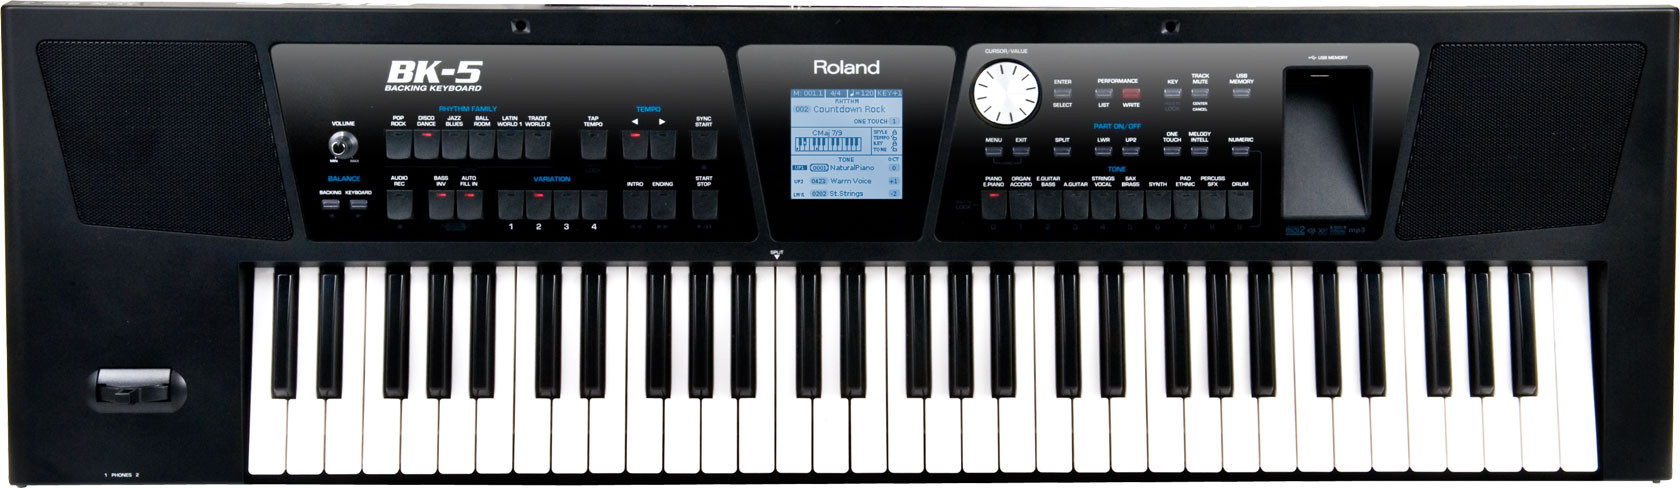 ROLAND BK5 TASTIERA ARRANGER CON PORTA USB BACKING KEYBOARD BK-5